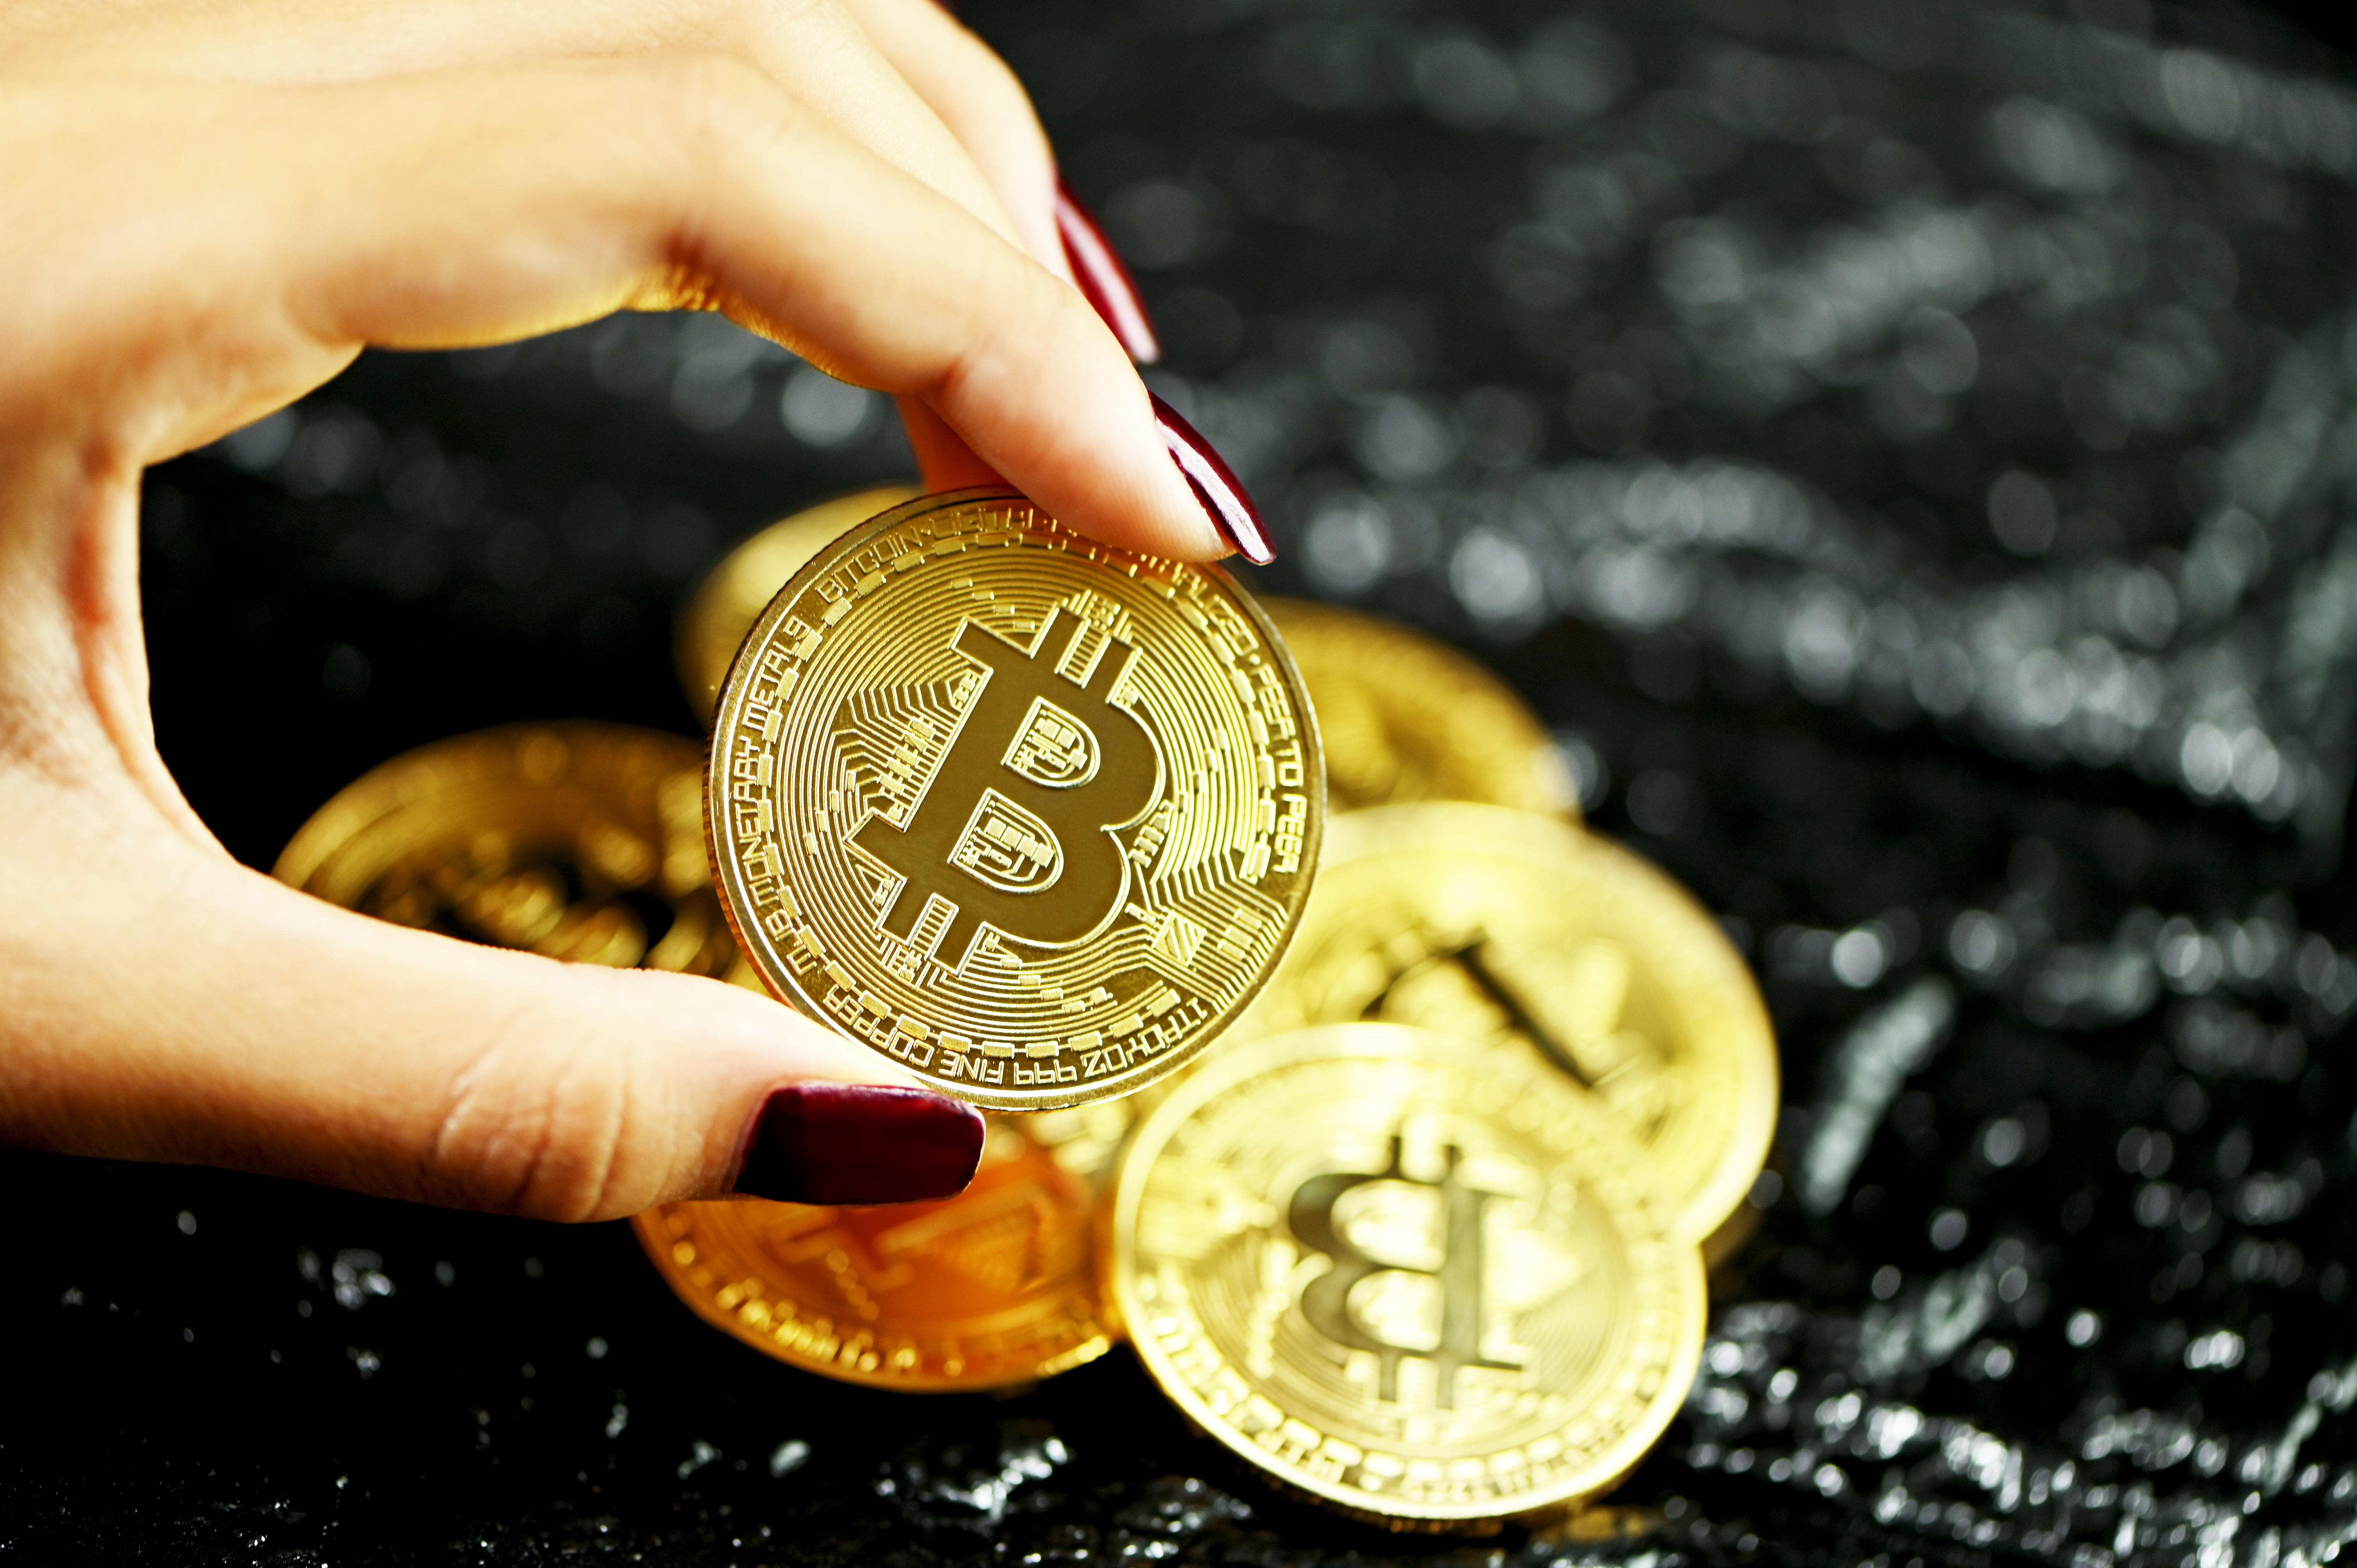 Bitcoin held in one hand with scarlet-colored nails against a pile of Bitcoins.